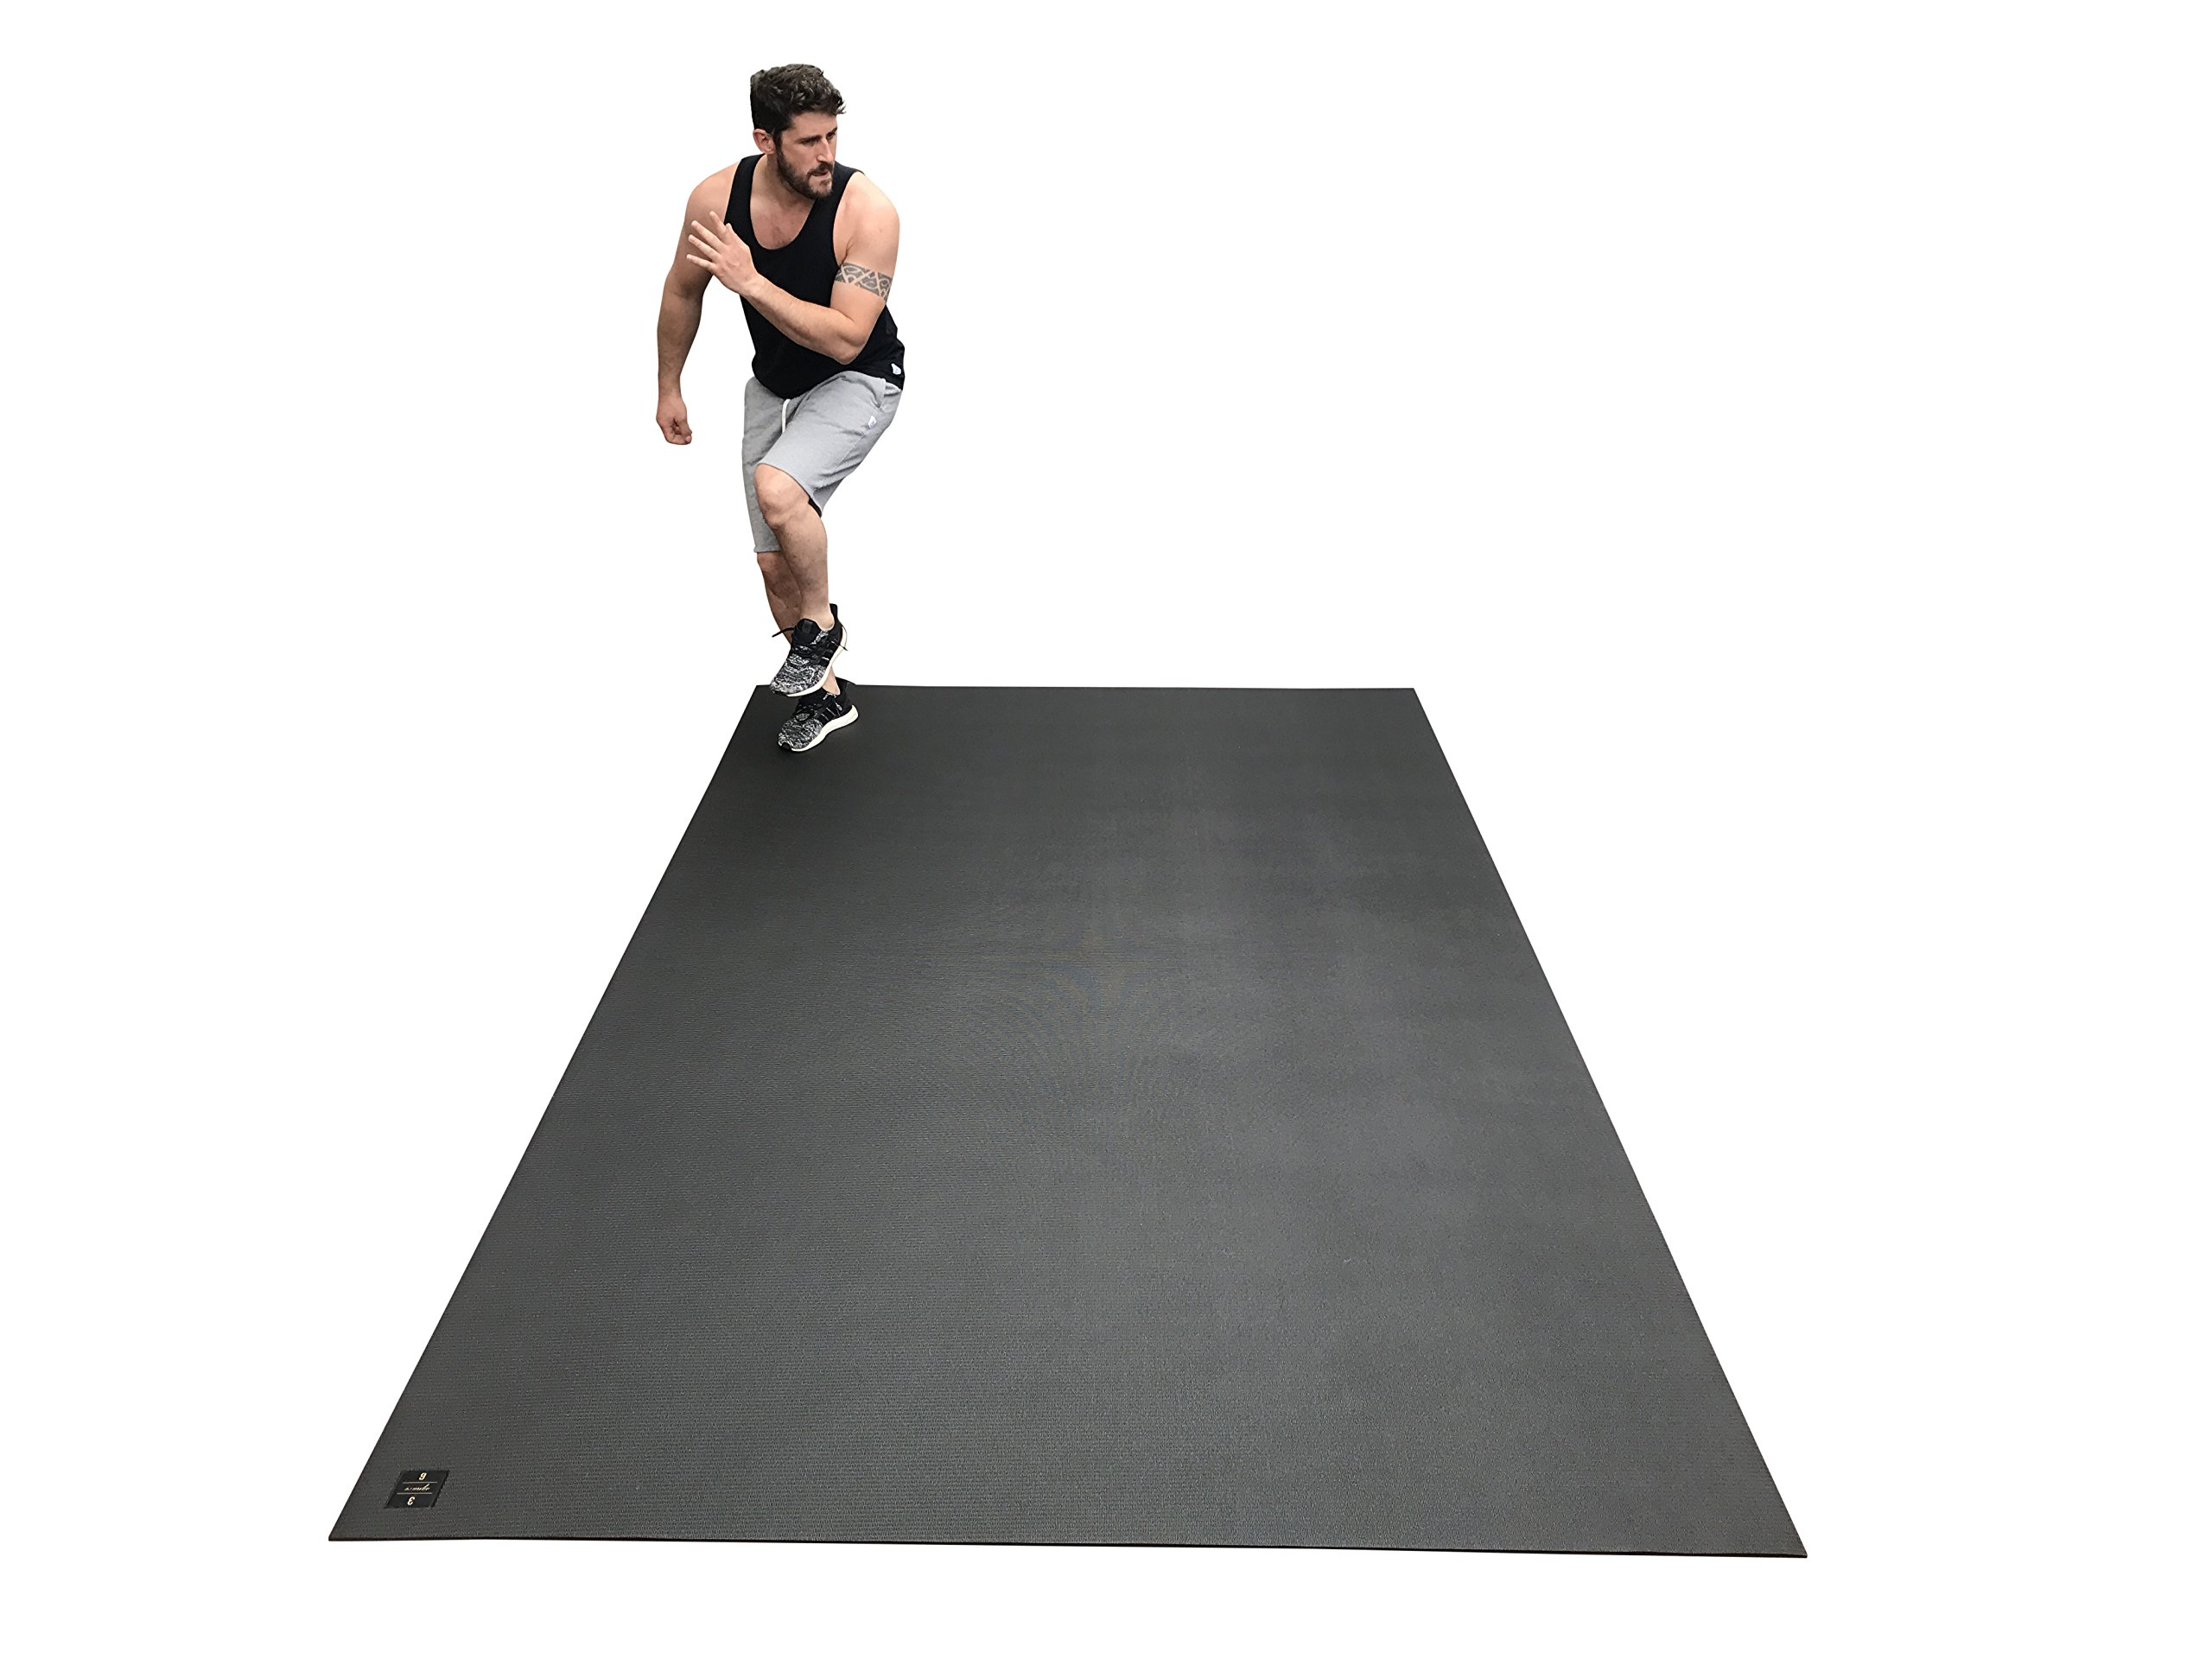 Large Exercise Mat 10 Ft X 6 Ft (120'' x 72'' x 1/4''). Designed For Cardio Workouts WITH Shoes. Perfect For MMA, Cardio And Plyometric Workouts. Ideal For Home Gyms Or Living Room Workouts. Square36 by Square36